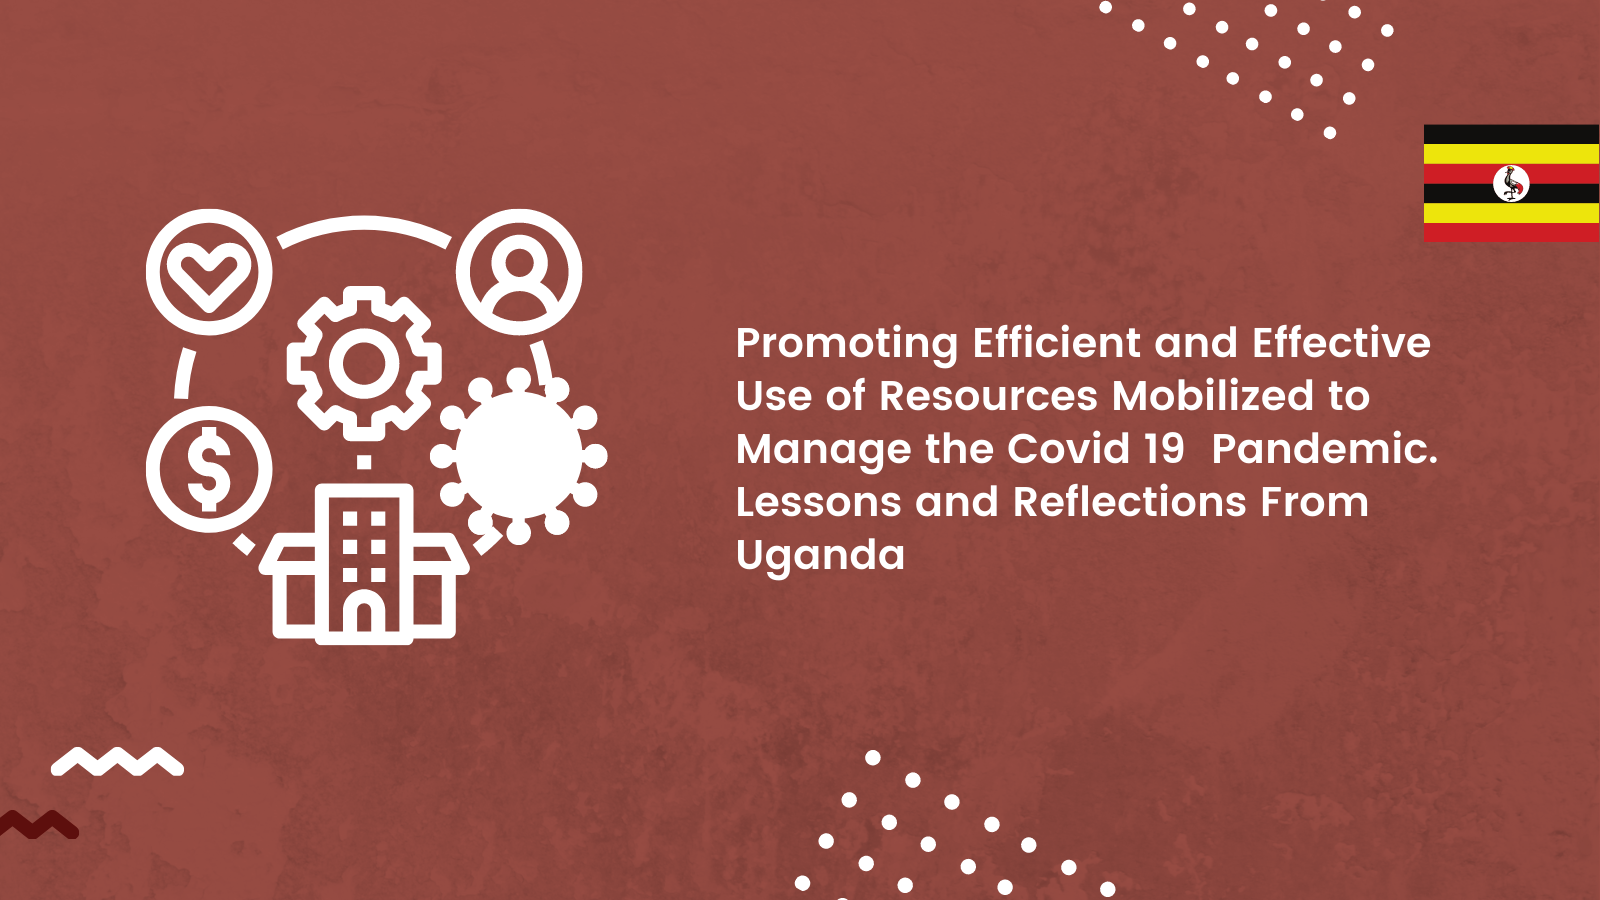 Promoting Efficient and Effective Use of Resources Mobilized to Manage the Covid 19  Pandemic. Lessons and Reflections From Uganda